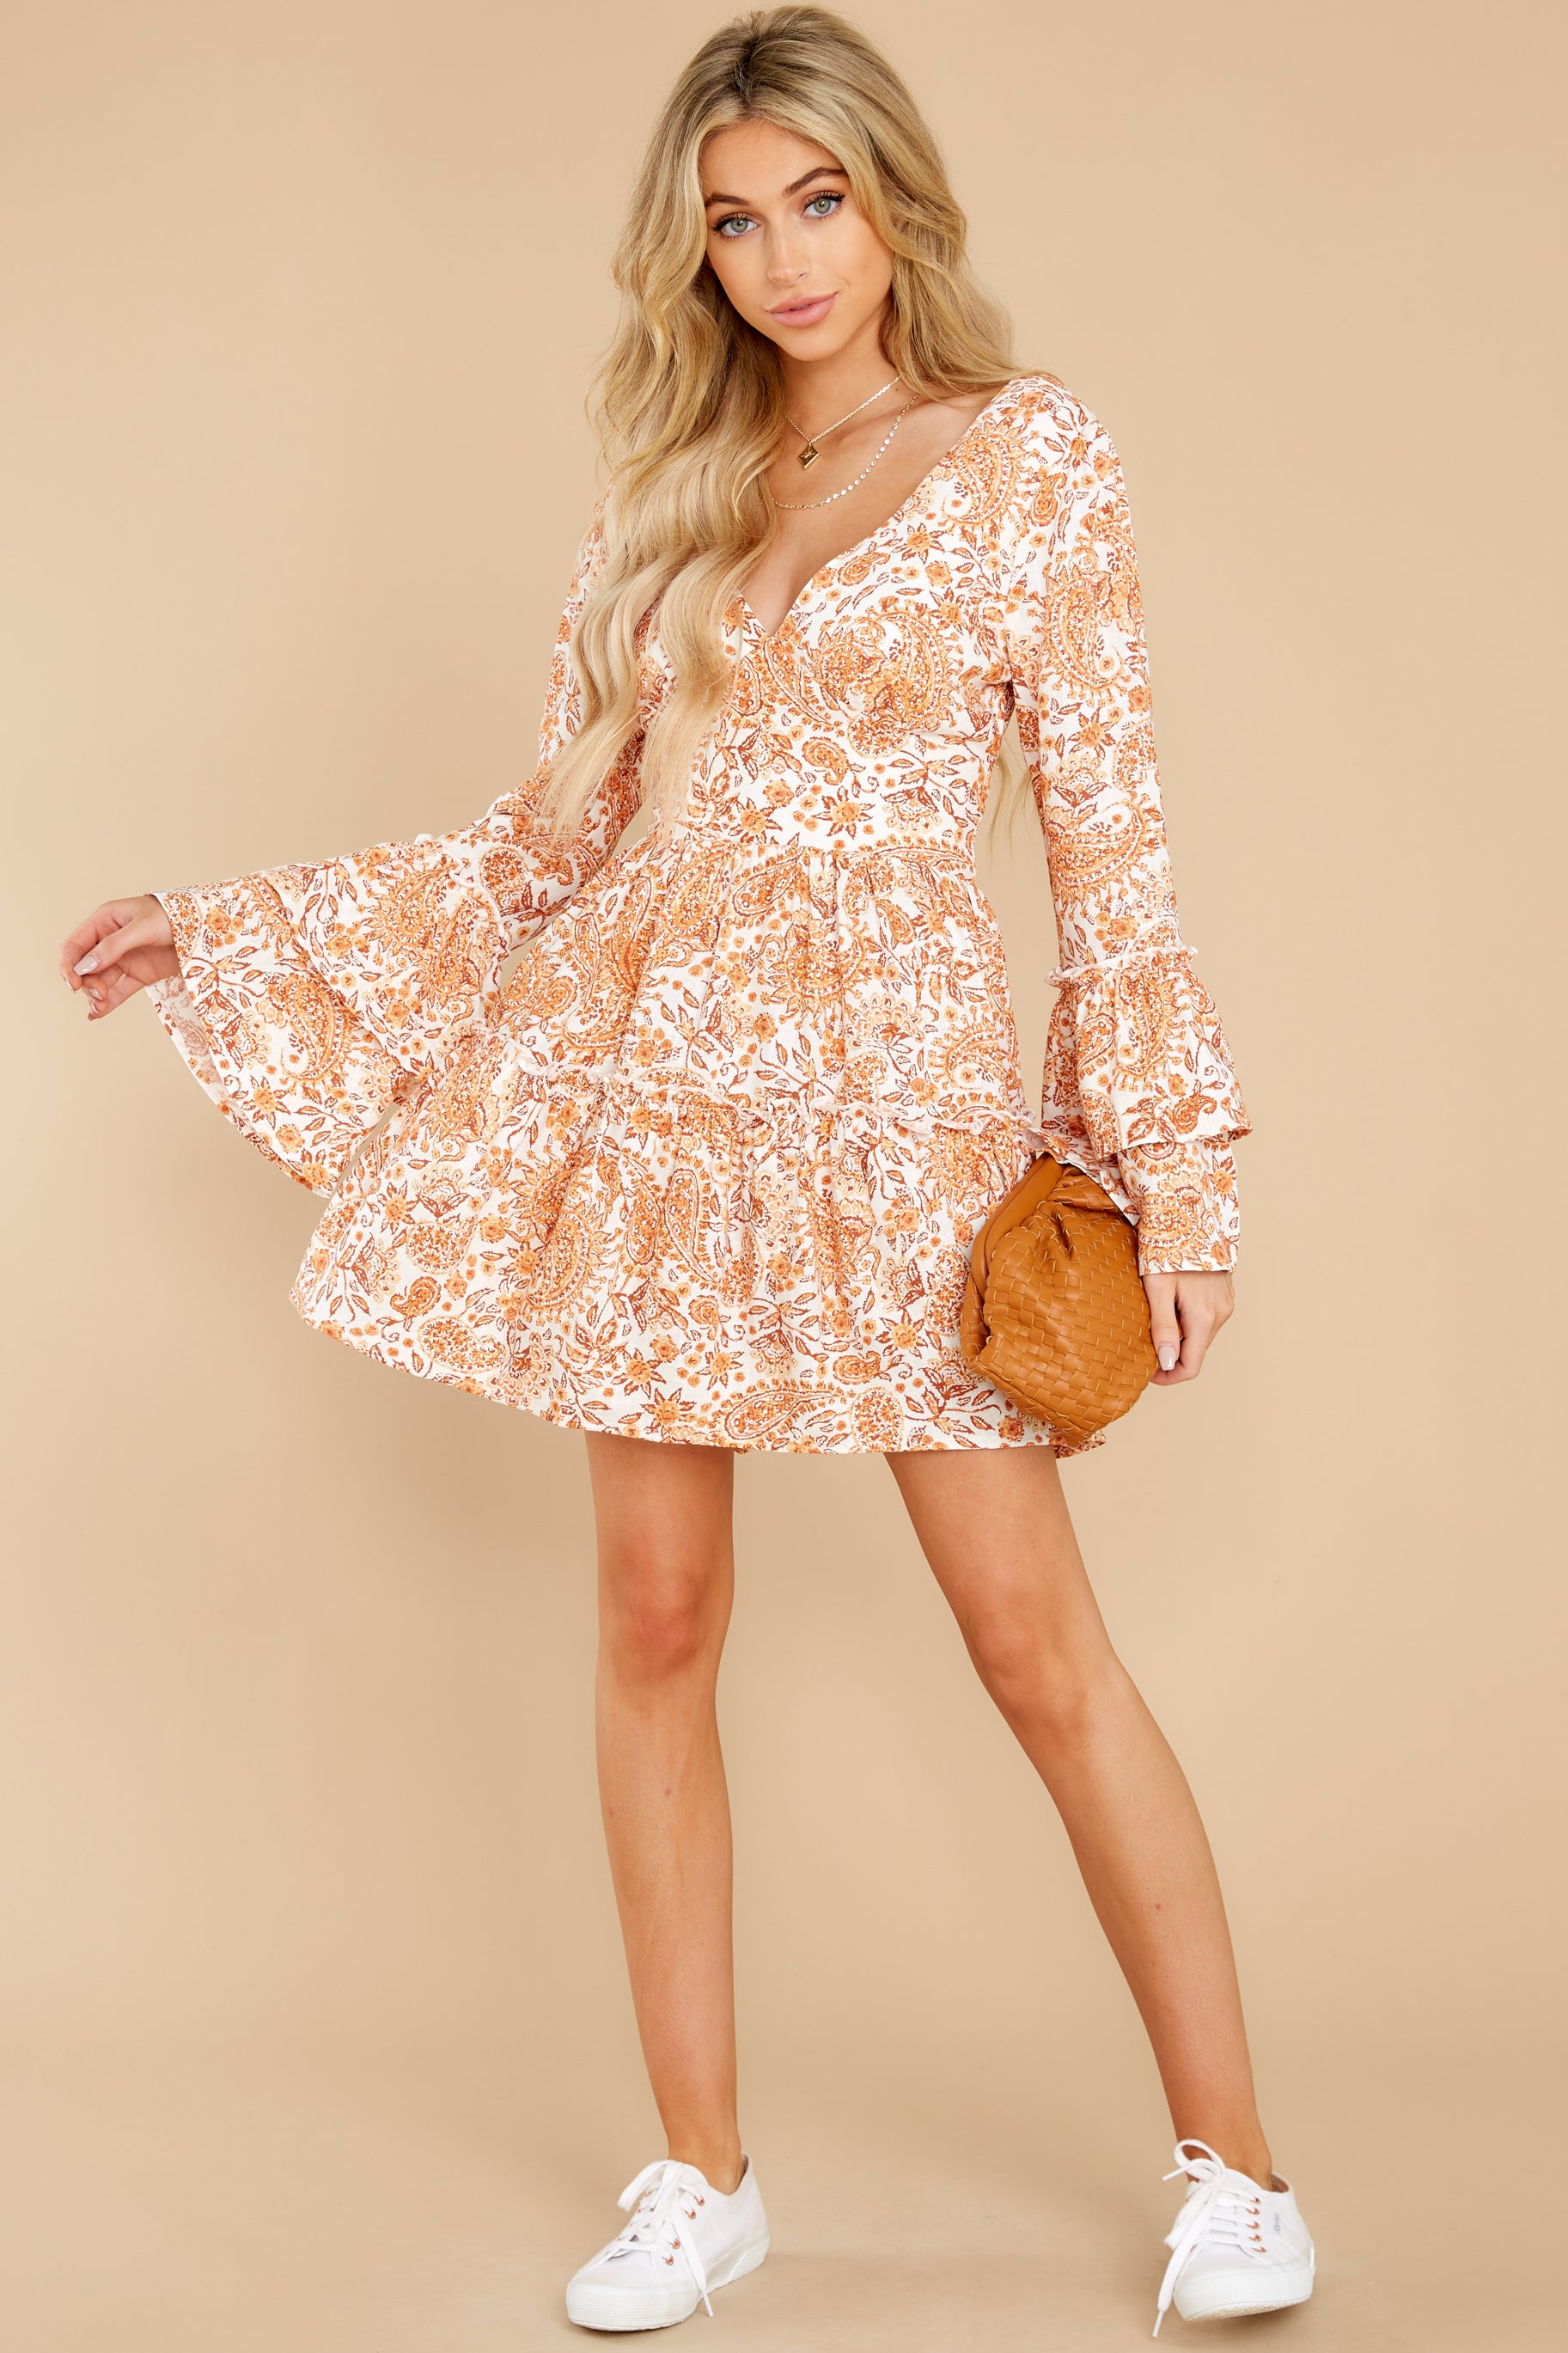 1 Sunrise Paisley Orange Mini Dress at reddress.com